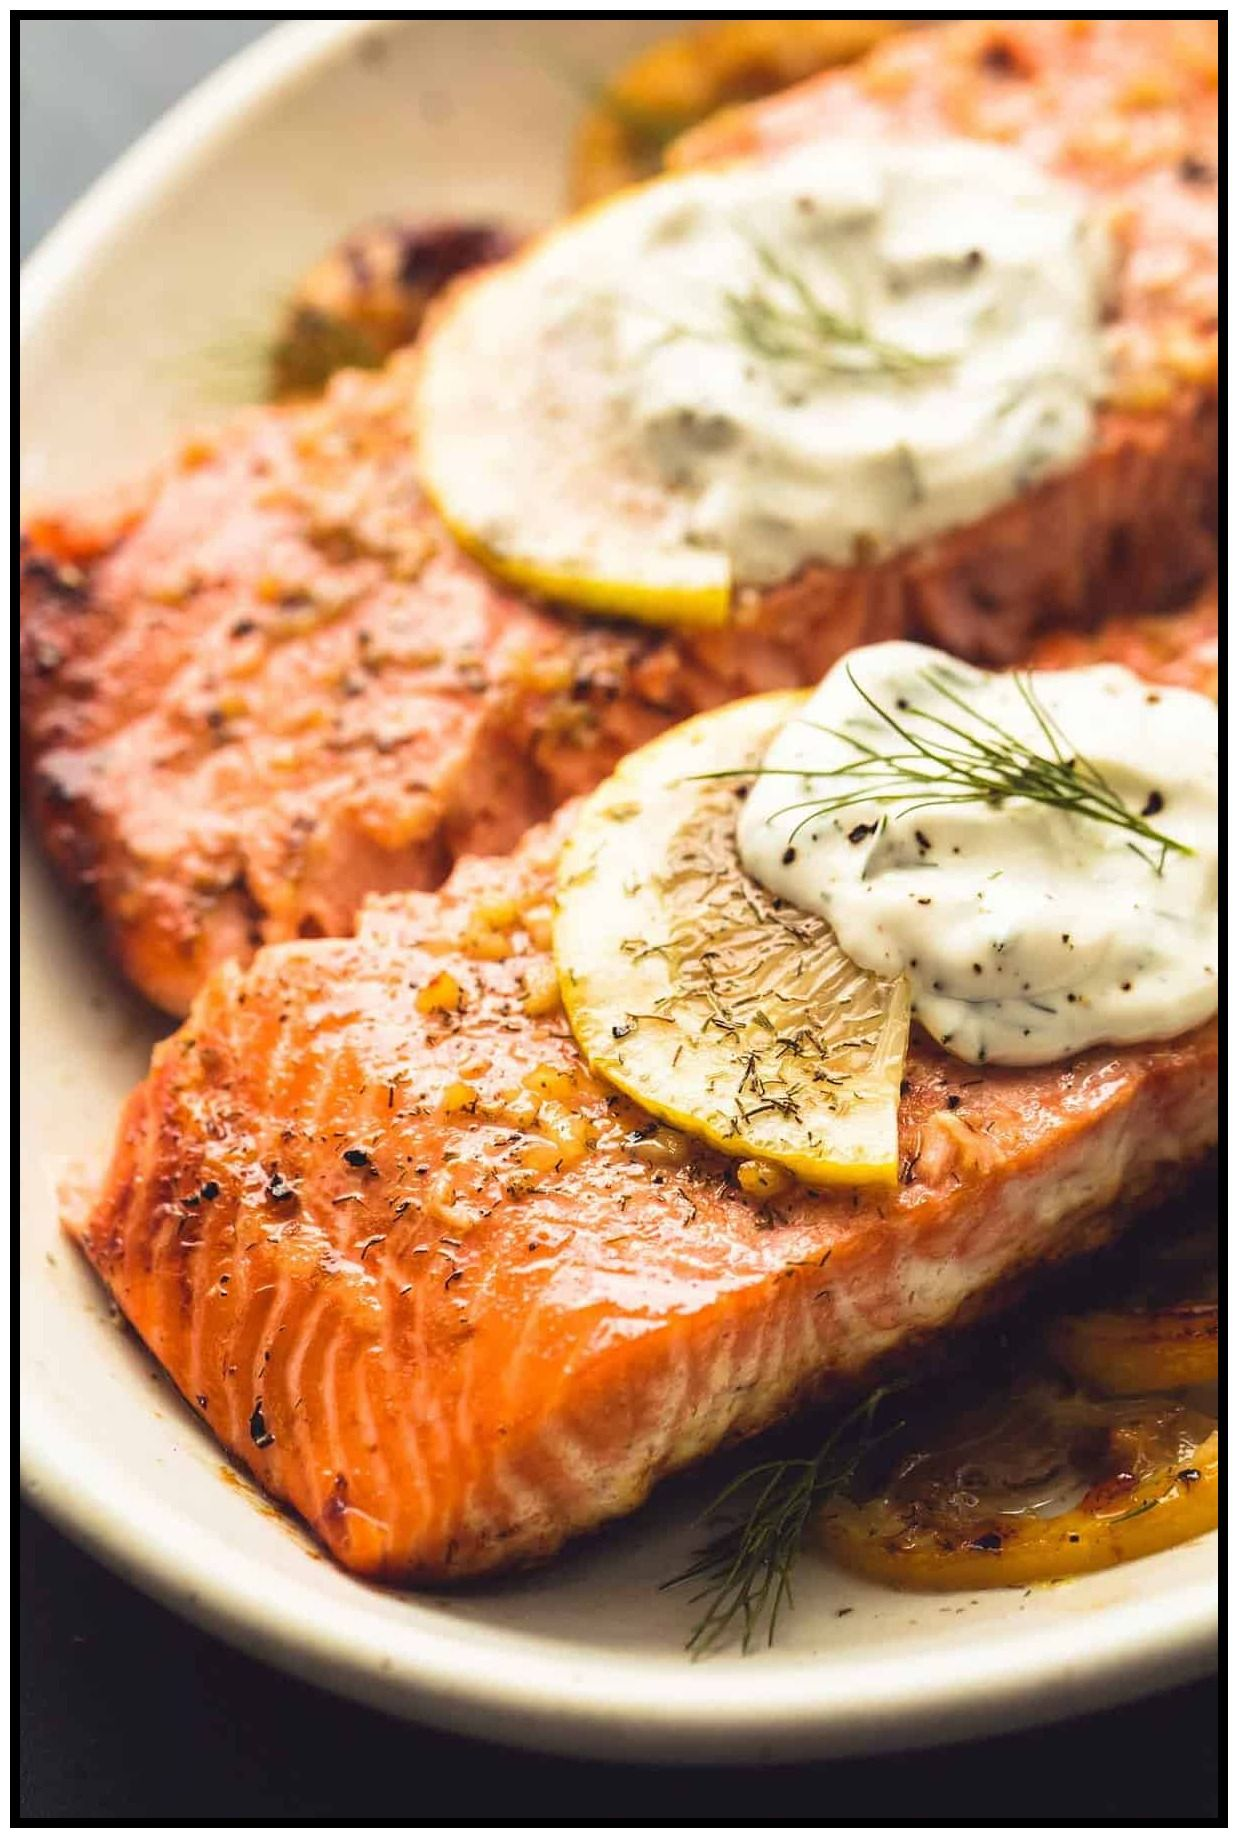 102 Reference Of Dill Salmon Recipe Sour Cream In 2020 Healthy Baked Salmon Baked Salmon Recipes Salmon Recipes